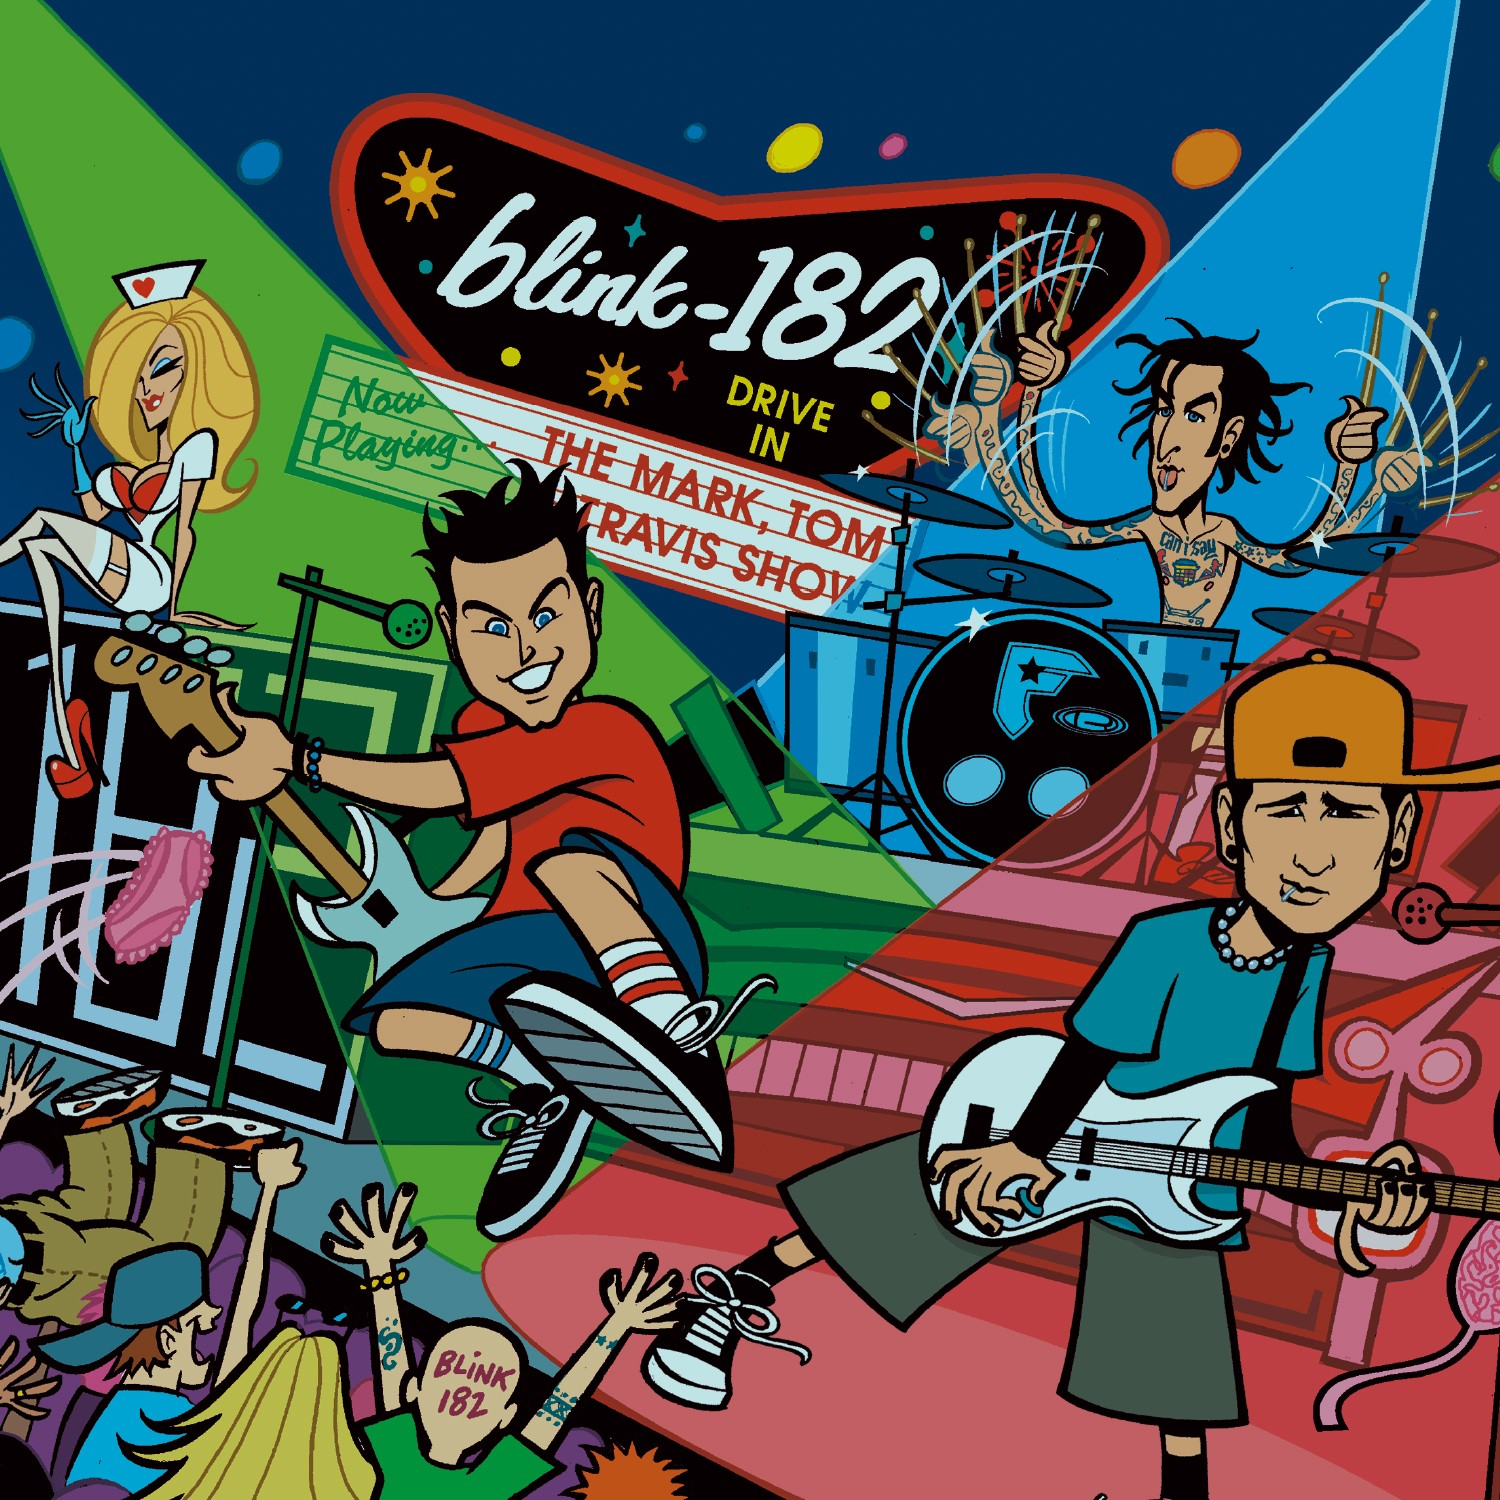 Blink 182 - The Mark Tom and Travis Show Vinyl